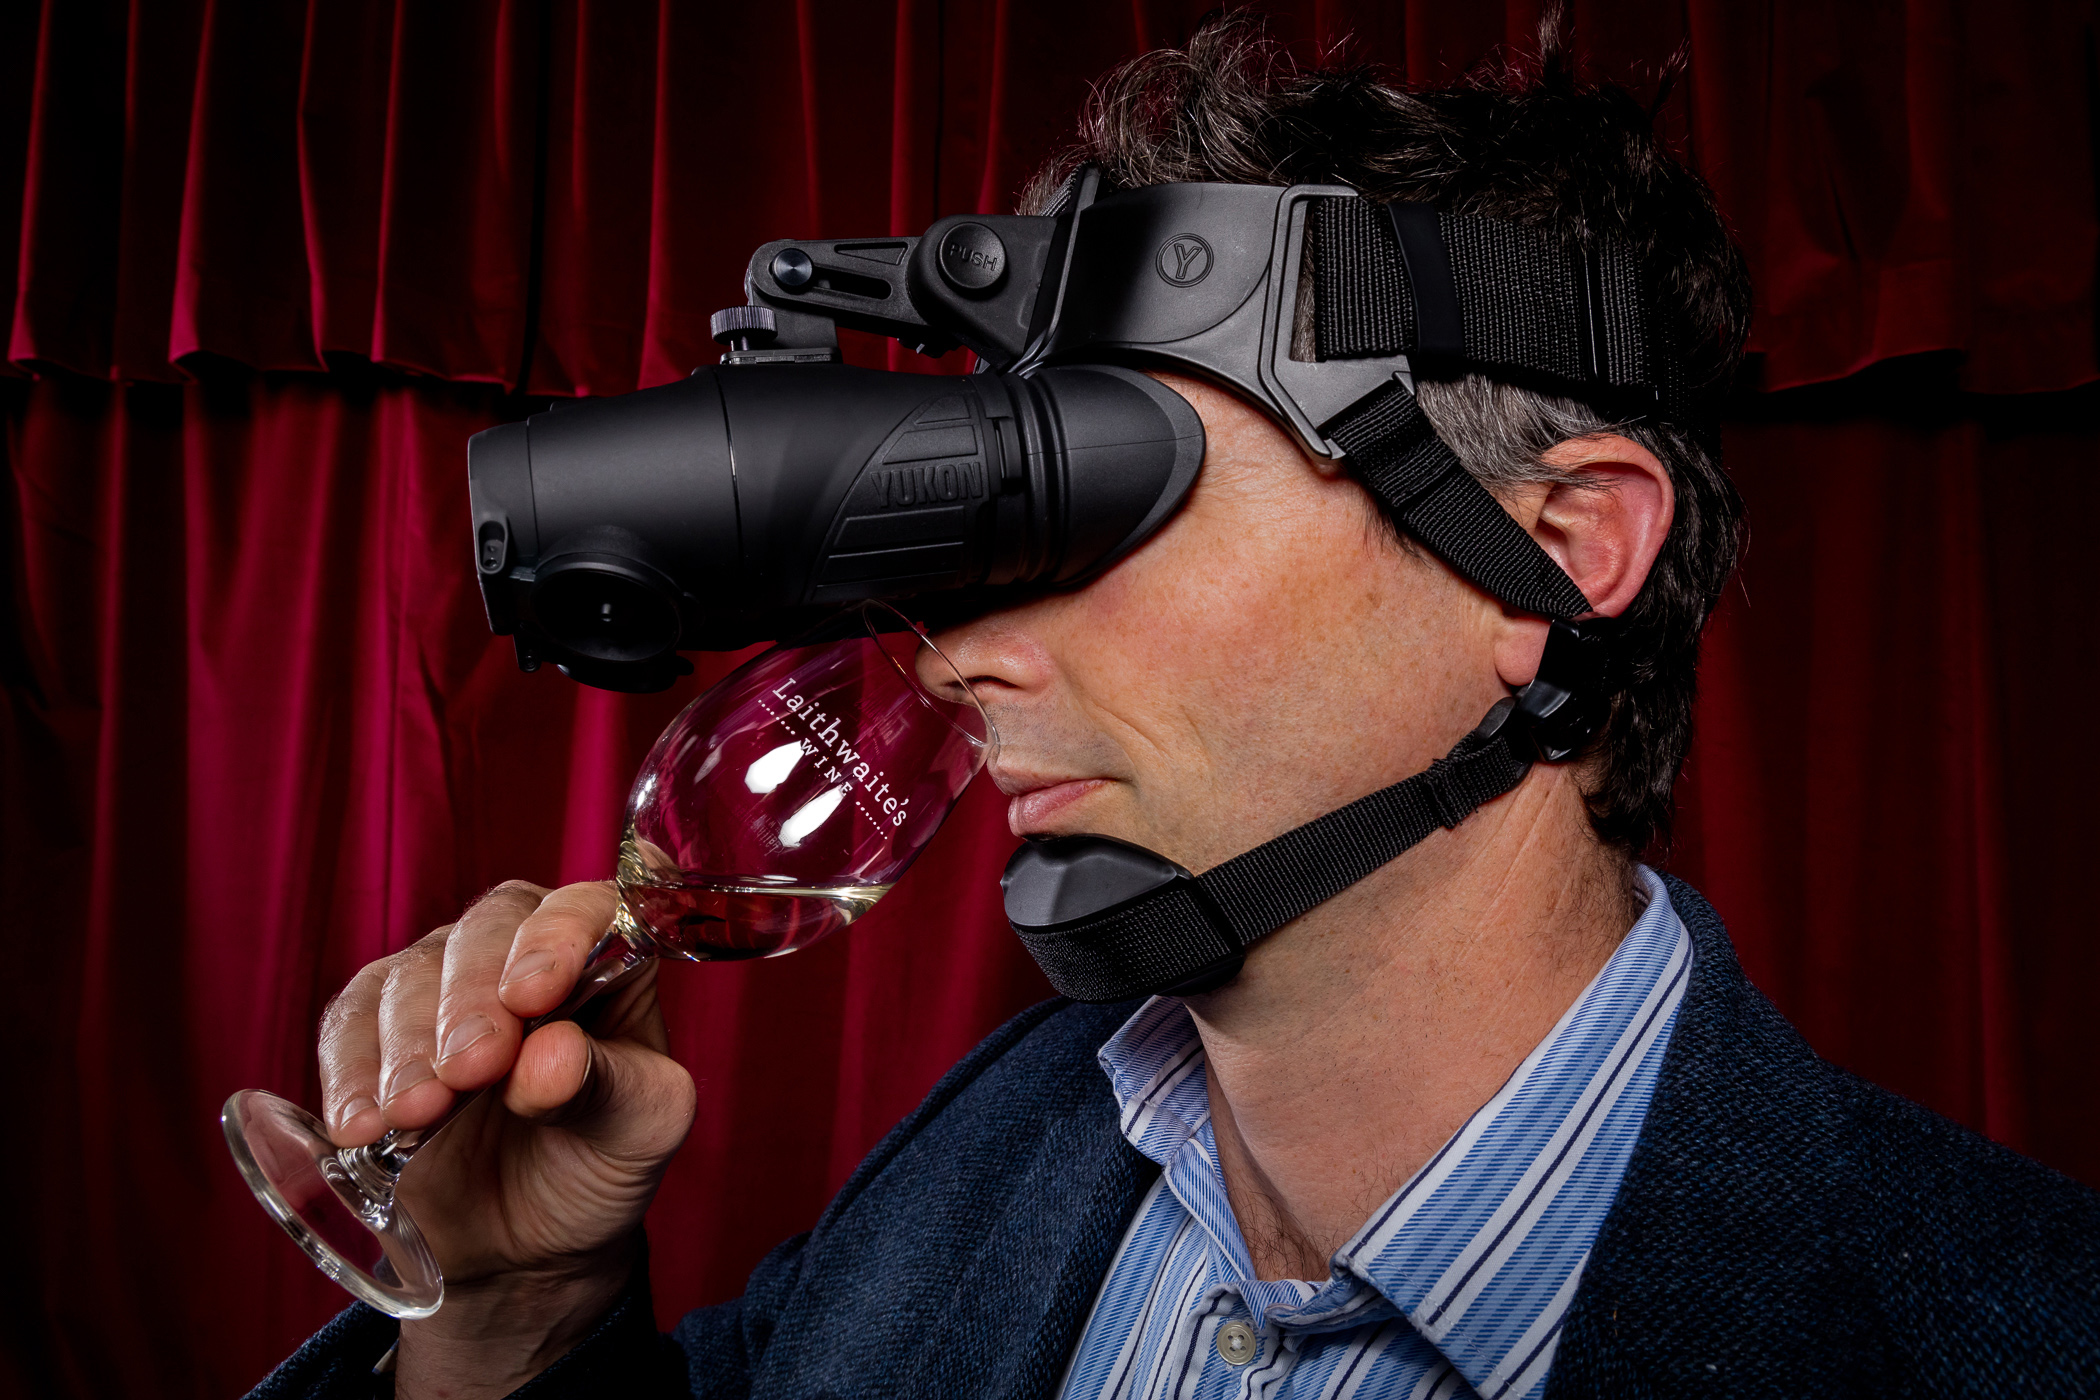 You can now taste test wine in pitch black